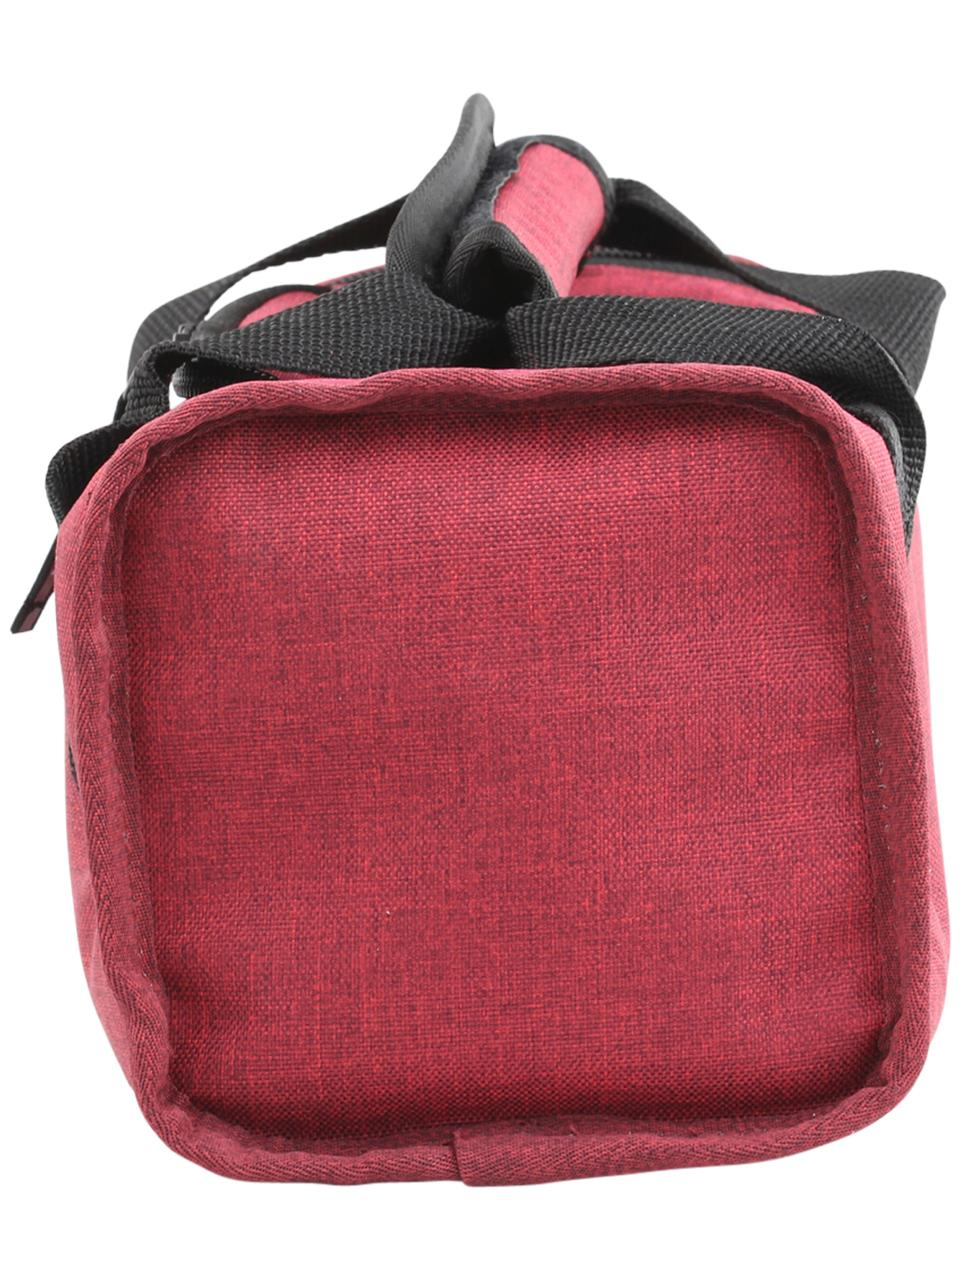 Nike-Deluxe-Insulated-Tote-Lunch-Bag thumbnail 35